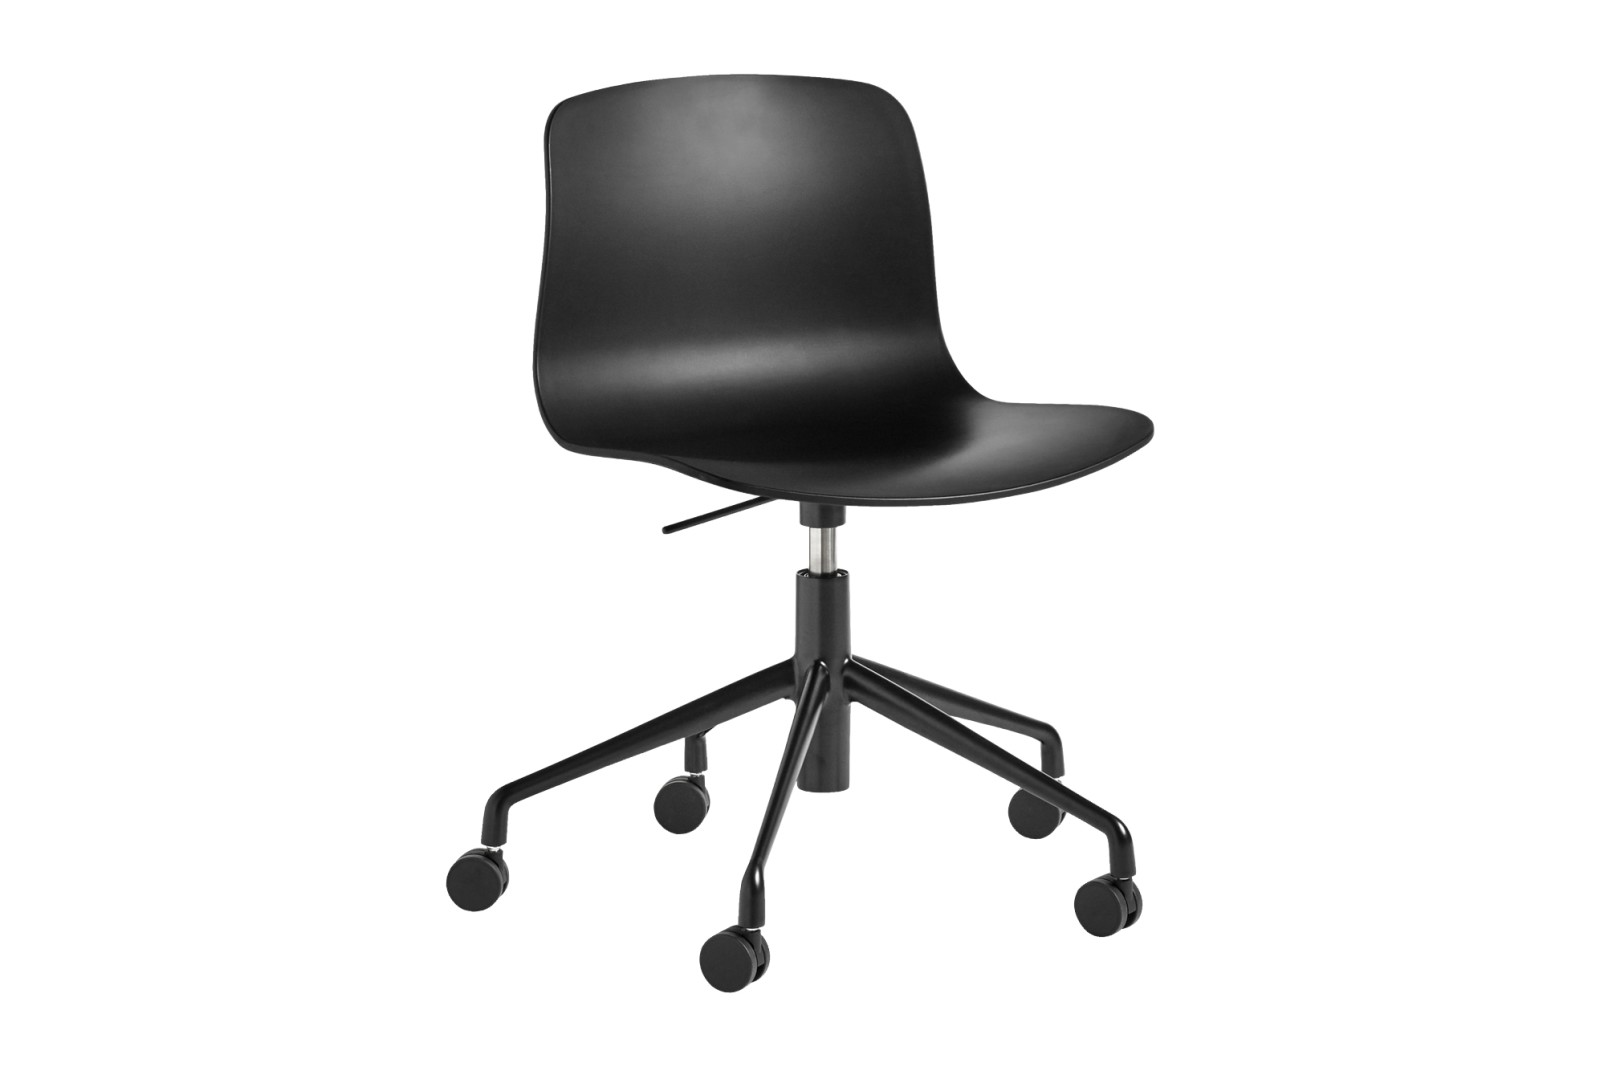 About A Chair AAC50 Black, White Powder Coated Steel